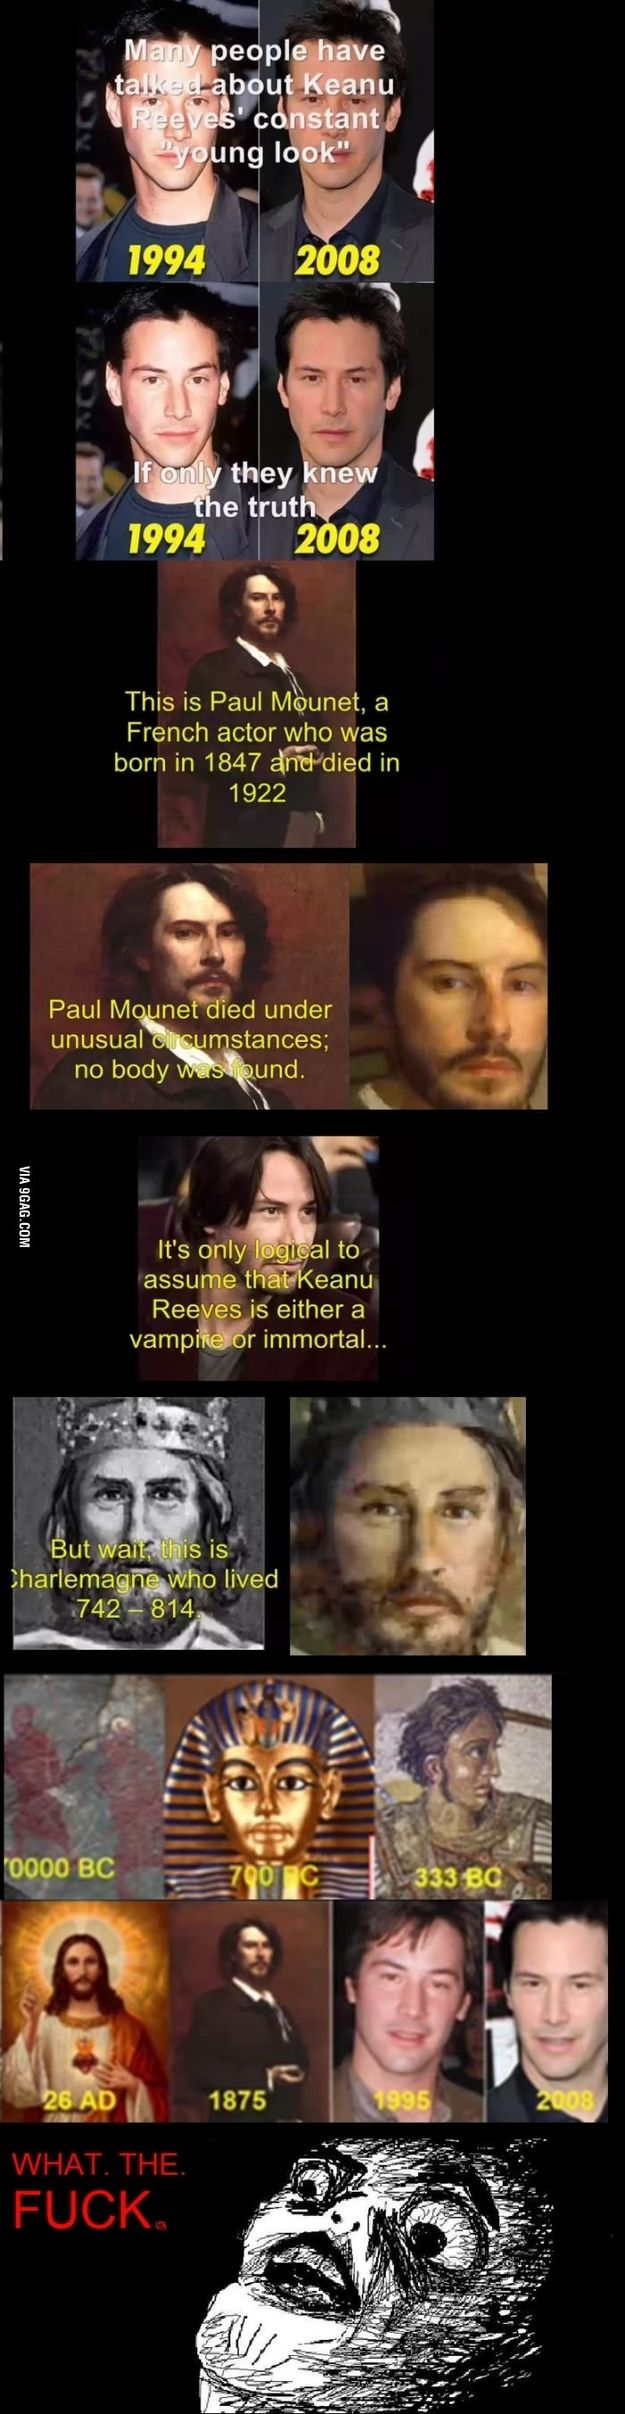 Keanu Reeves might be a time lord! HAHAHAHAHAHA